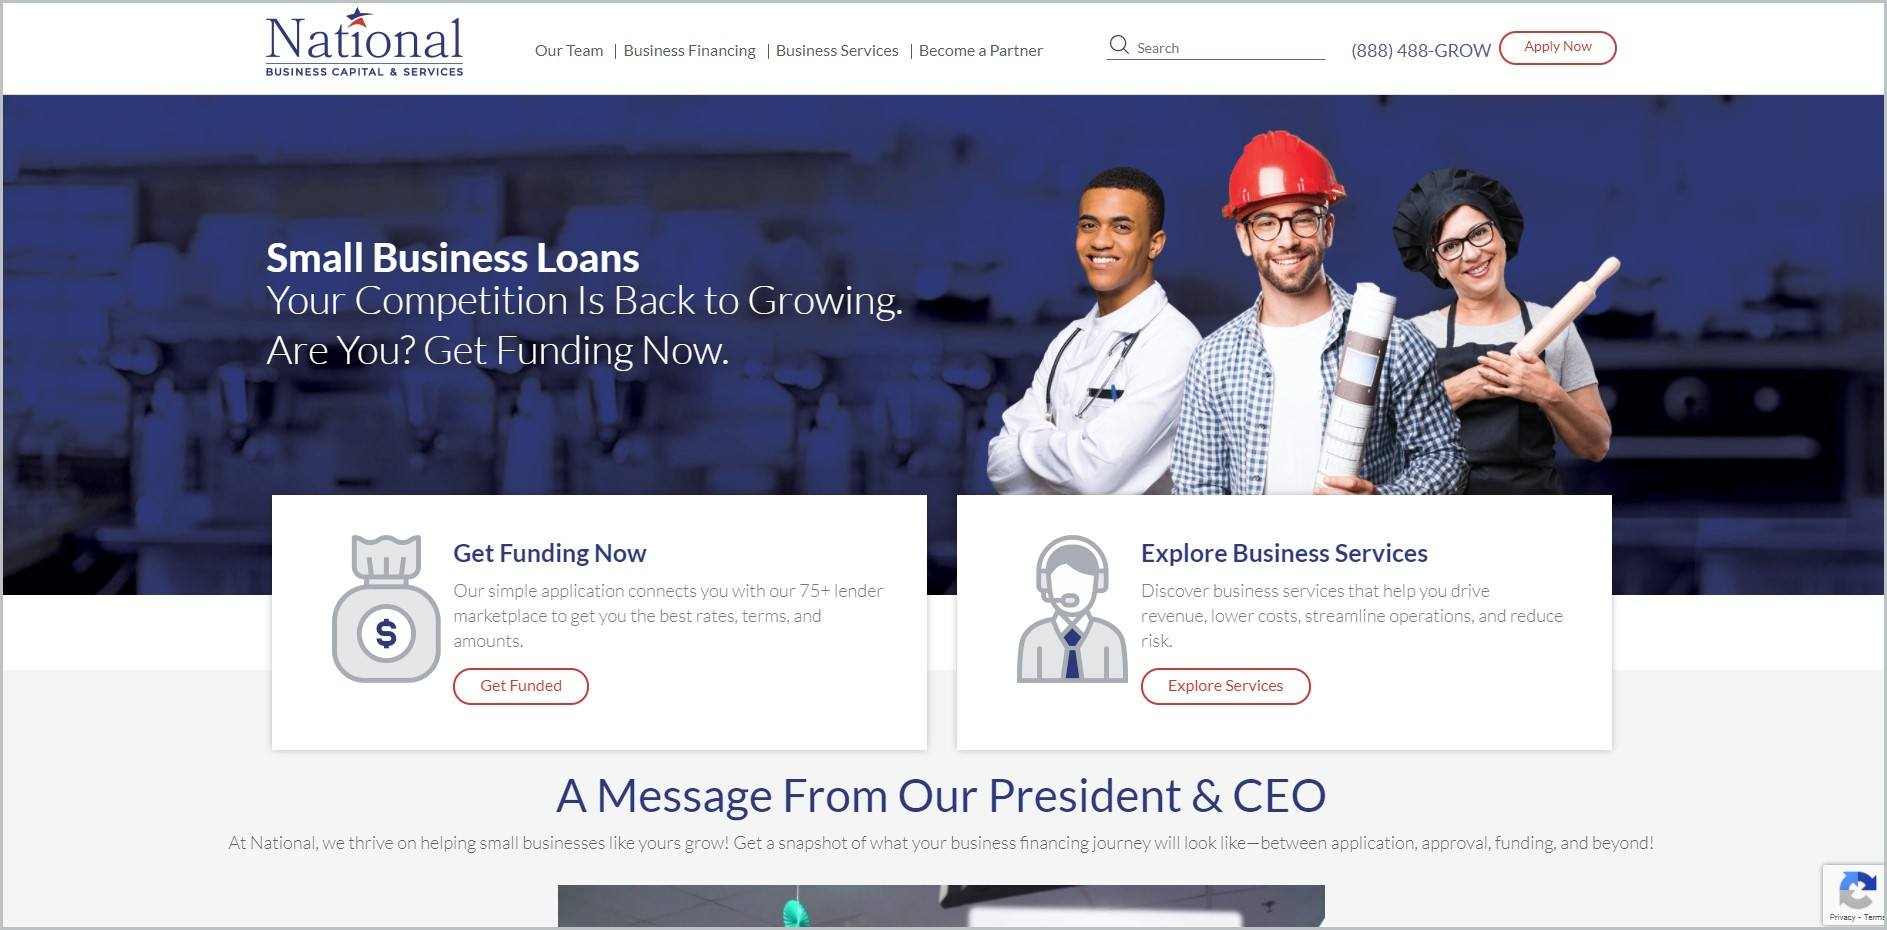 screenshot of National Business Capital homepage with white header bearing the website's name and main navigation menu, also showcasing an image showing a doctor, an engineer, and a baker